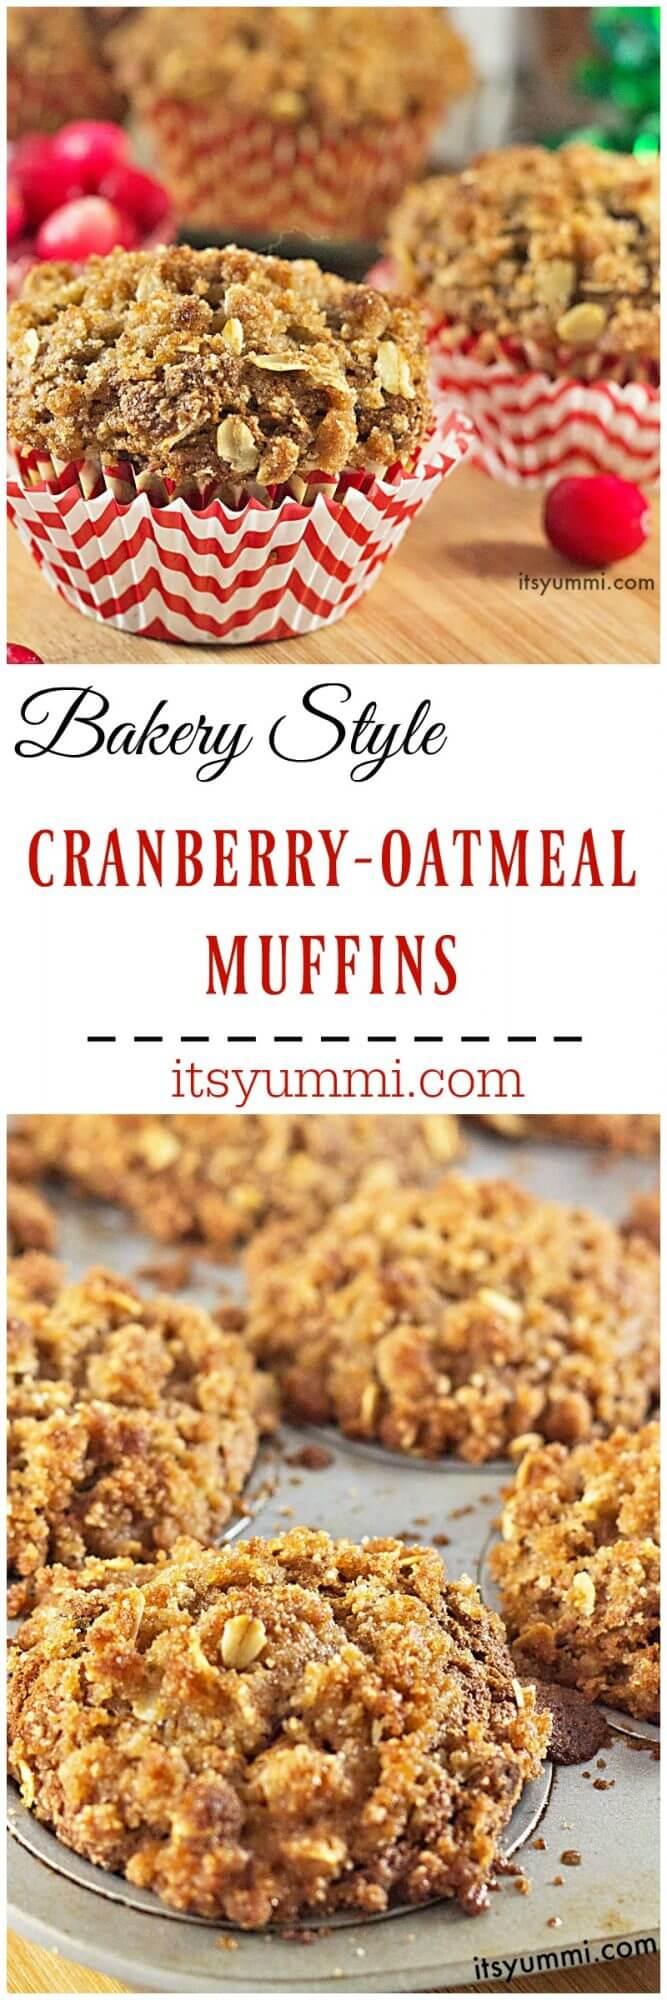 titled image (and shown): Cranberry Muffins with Oatmeal Streusel